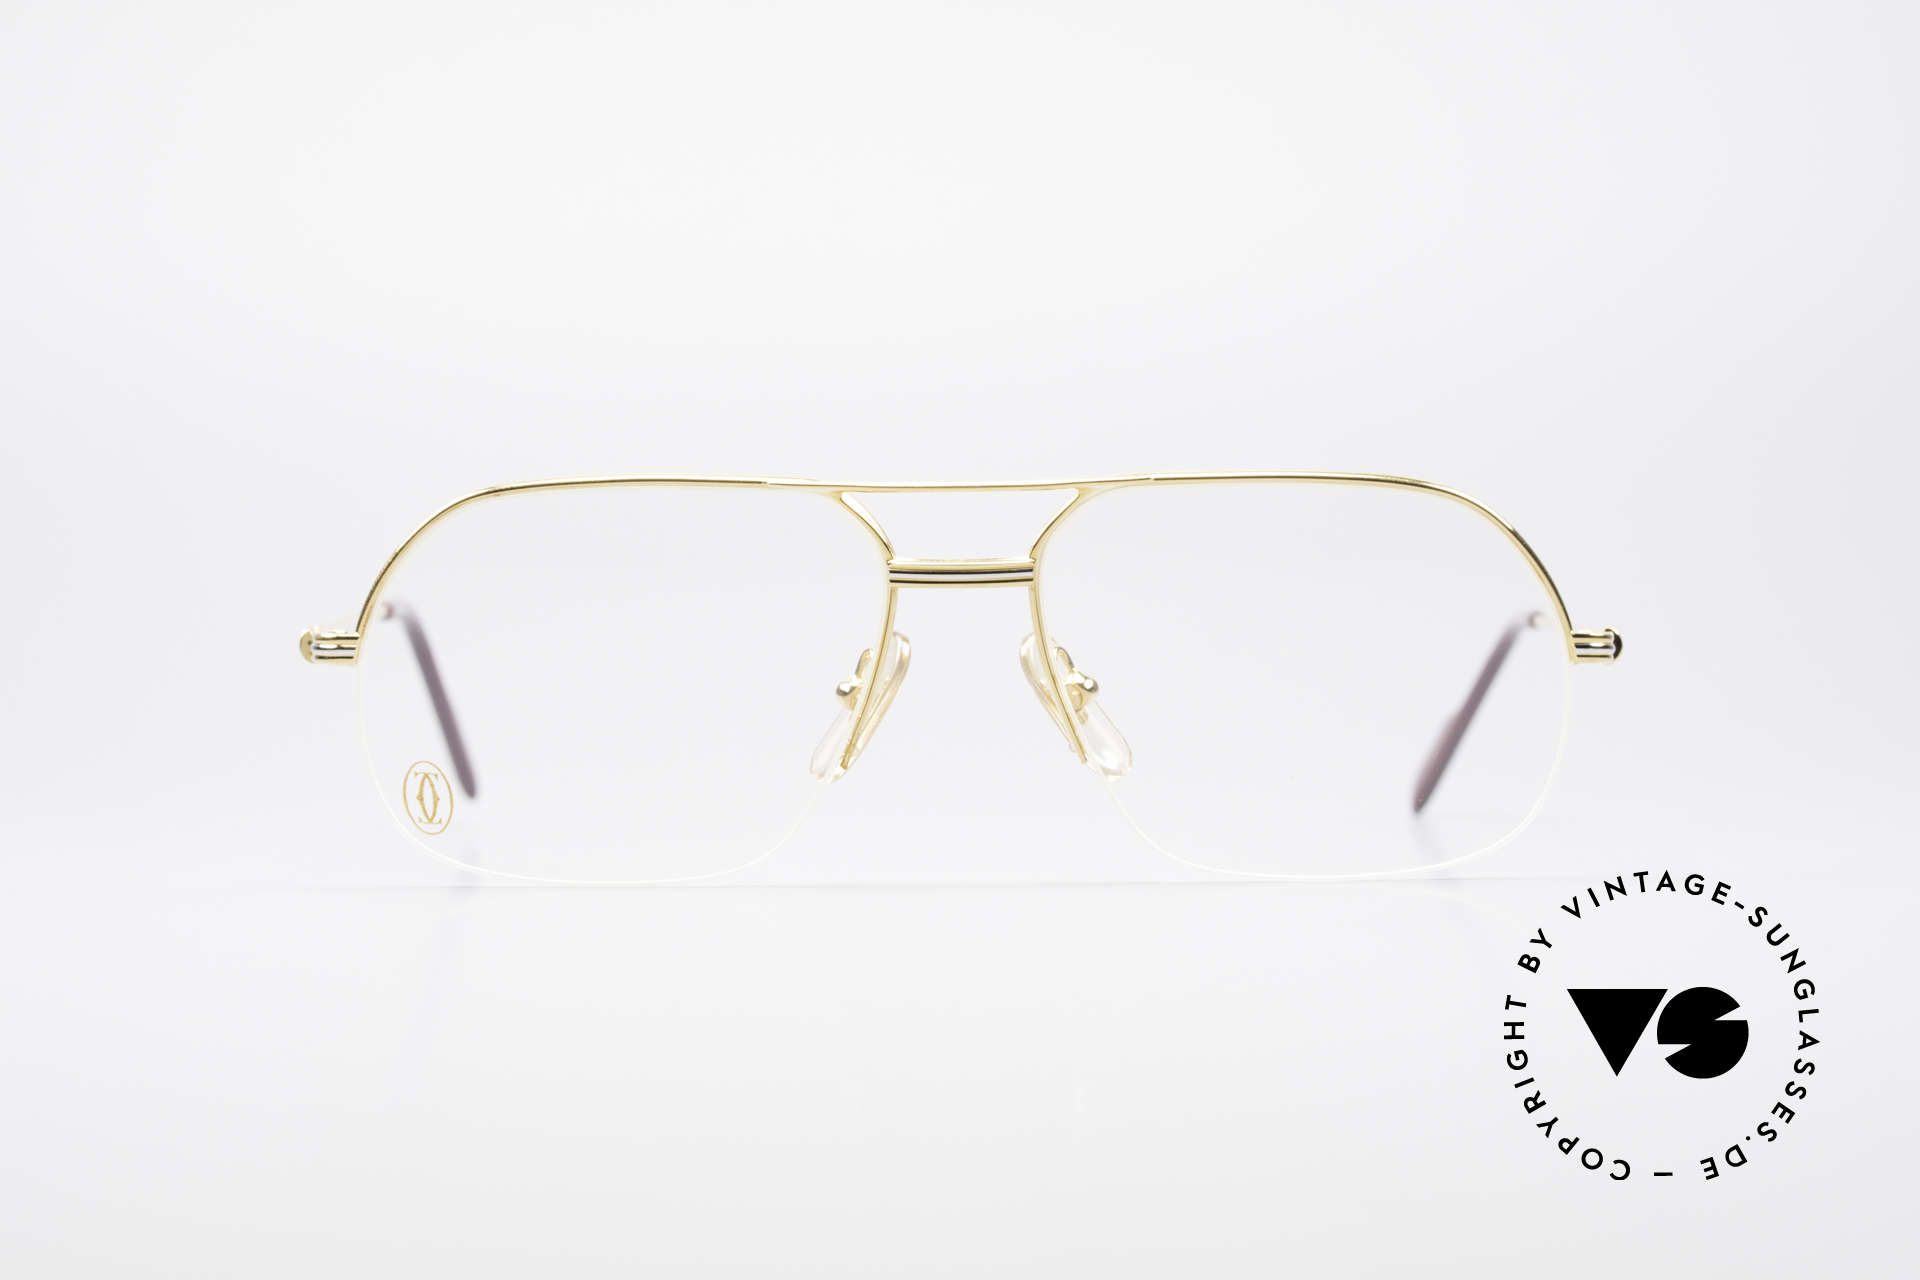 Cartier Orsay Luxury Vintage Eyeglasses, model of the 'Semi-Rimless' Collection by CARTIER, Made for Men